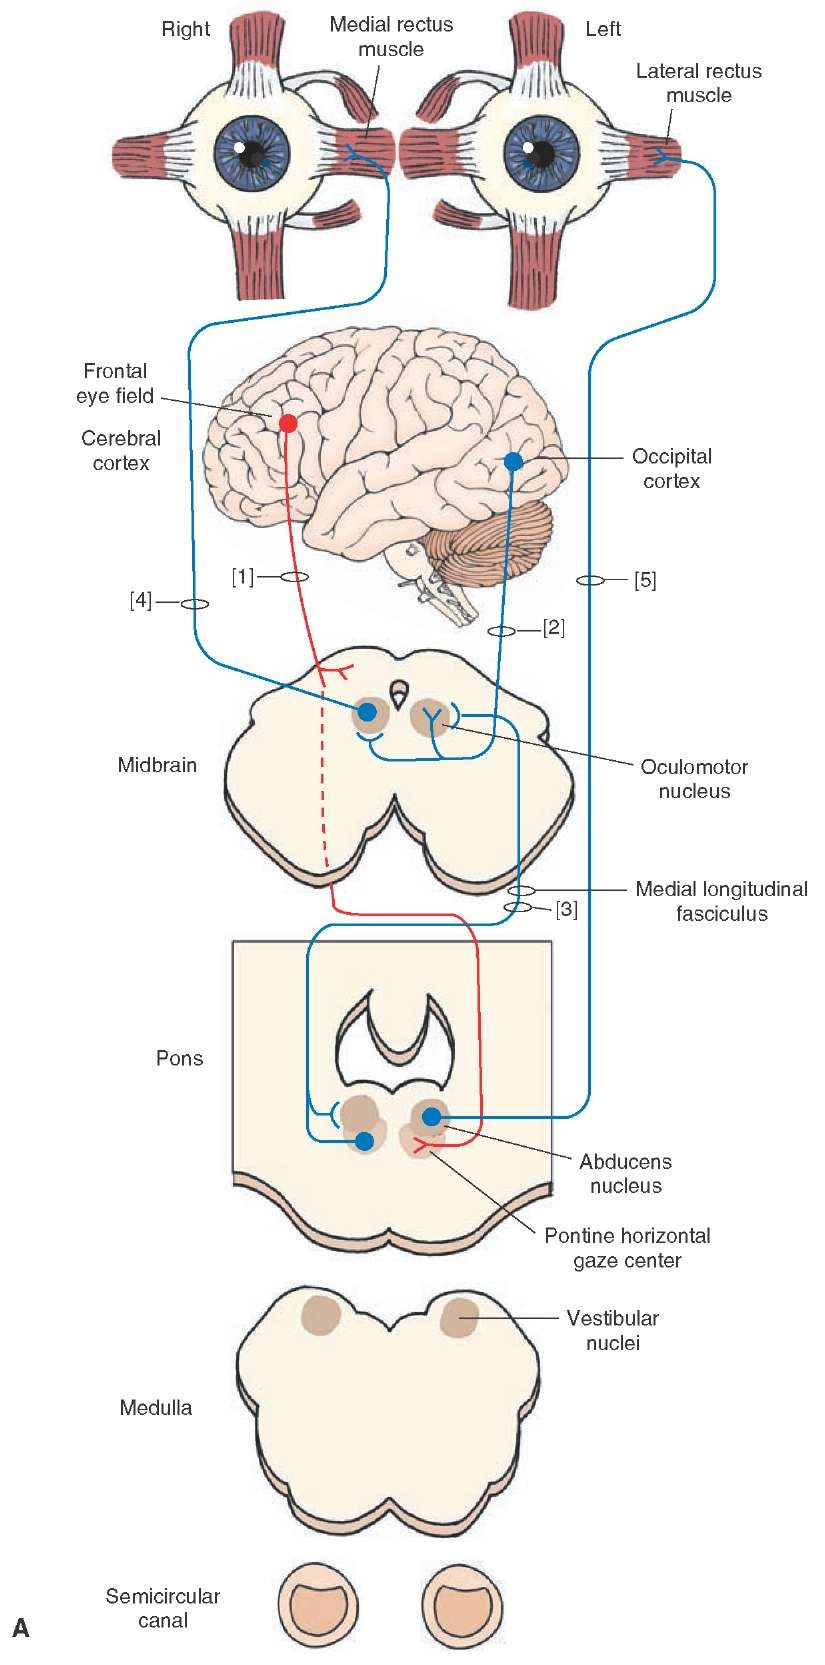 Diagram illustrating the anatomical substrates underlying conscious and unconscious regulation of conjugate gaze and the vestibular-ocular reflex. (A) Several of the key relationships revealing the connections between the cerebral cortex and the pontine gaze center as well as the linkage between cranial nerves (CN) VI and III are shown. Concerning conscious regulation of conjugate gaze, this process originates from the frontal lobe, where axons project to the contralateral horizontal gaze center (1). In this manner, activation of the left frontal eye field will result in movement of the eyes to the right because of excitation of the right abducens and left oculomotor nucleus. Involuntary regulation of conjugate gaze begins in part in the occipital cortex and projects bilaterally to CN III (2). The pontine gaze center projects ipsilaterally to CN VI and contralat-erally to CN III (3). The connections of CN III (4) to the medial rectus muscle and CN VI to the lateral rectus muscle (5) are also indicated.